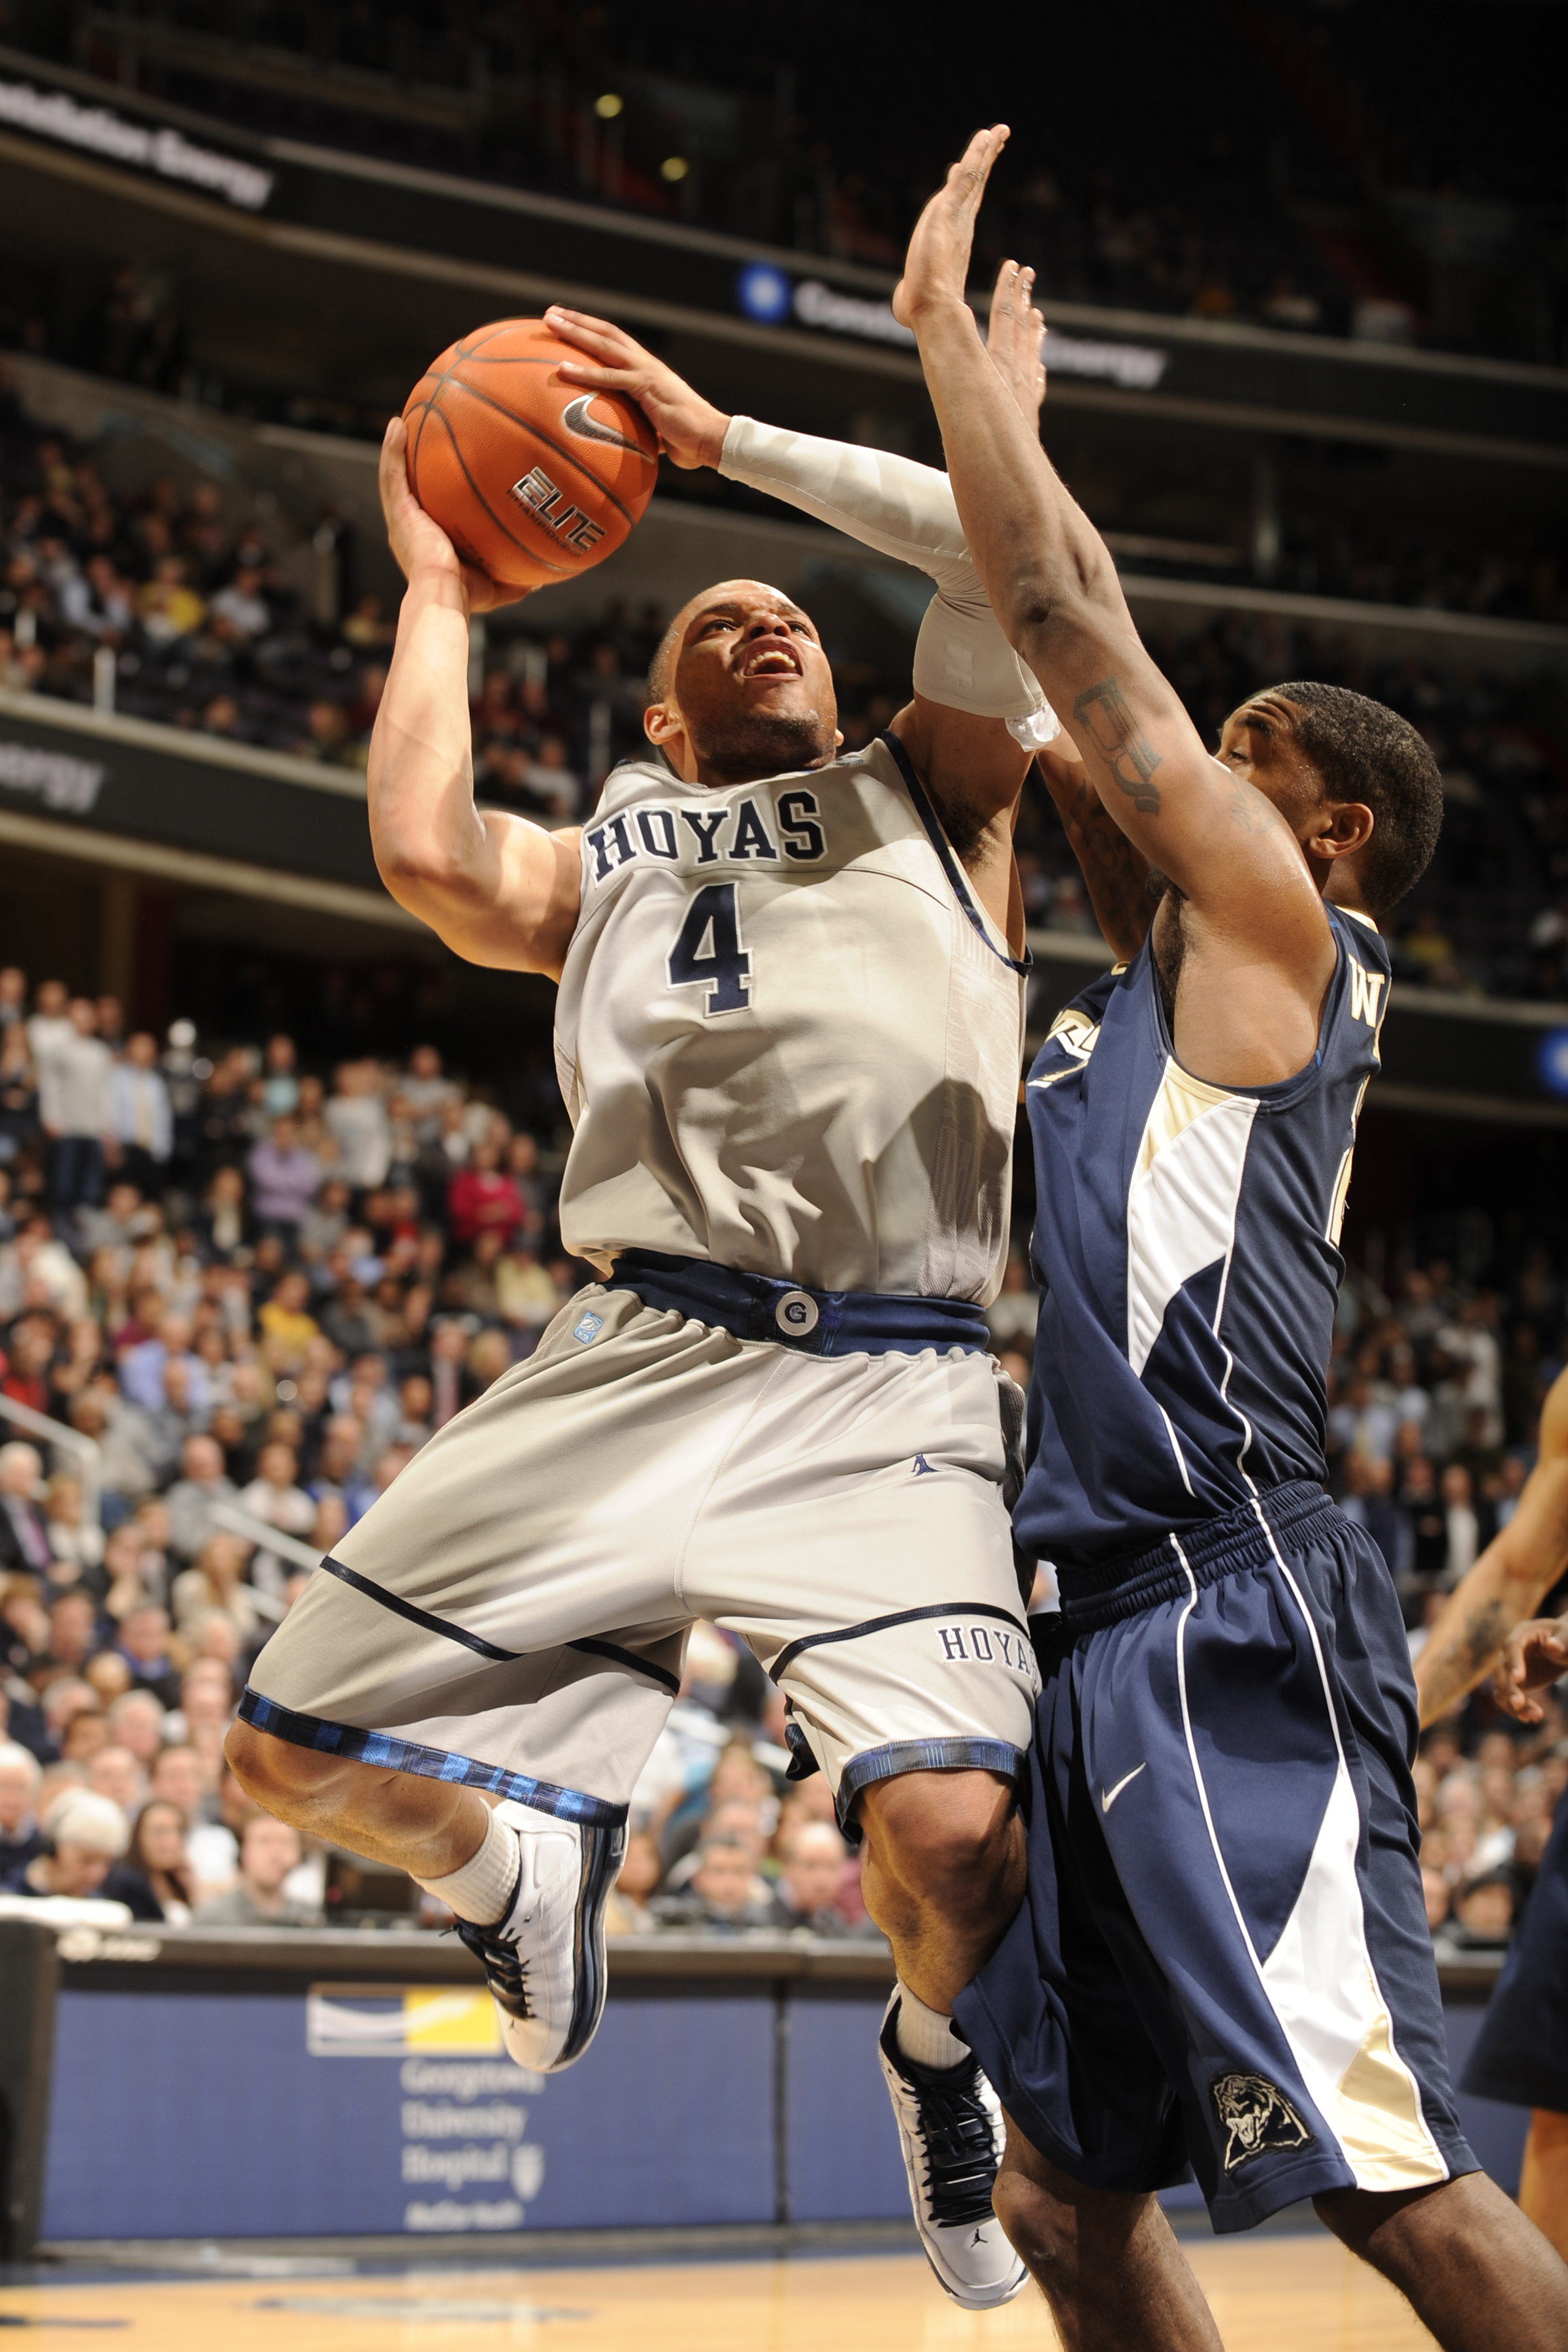 WASHINGTON, DC- JANUARY 12:  Chris Wright #4 of the Georgetown Hoya drives to basket during a college basketball game against the Pittsburgh Panthers on January 12, 2011 at the Verizon Center in Washington, DC.   The Panthers won 72-57.  (Photo by Mitchel